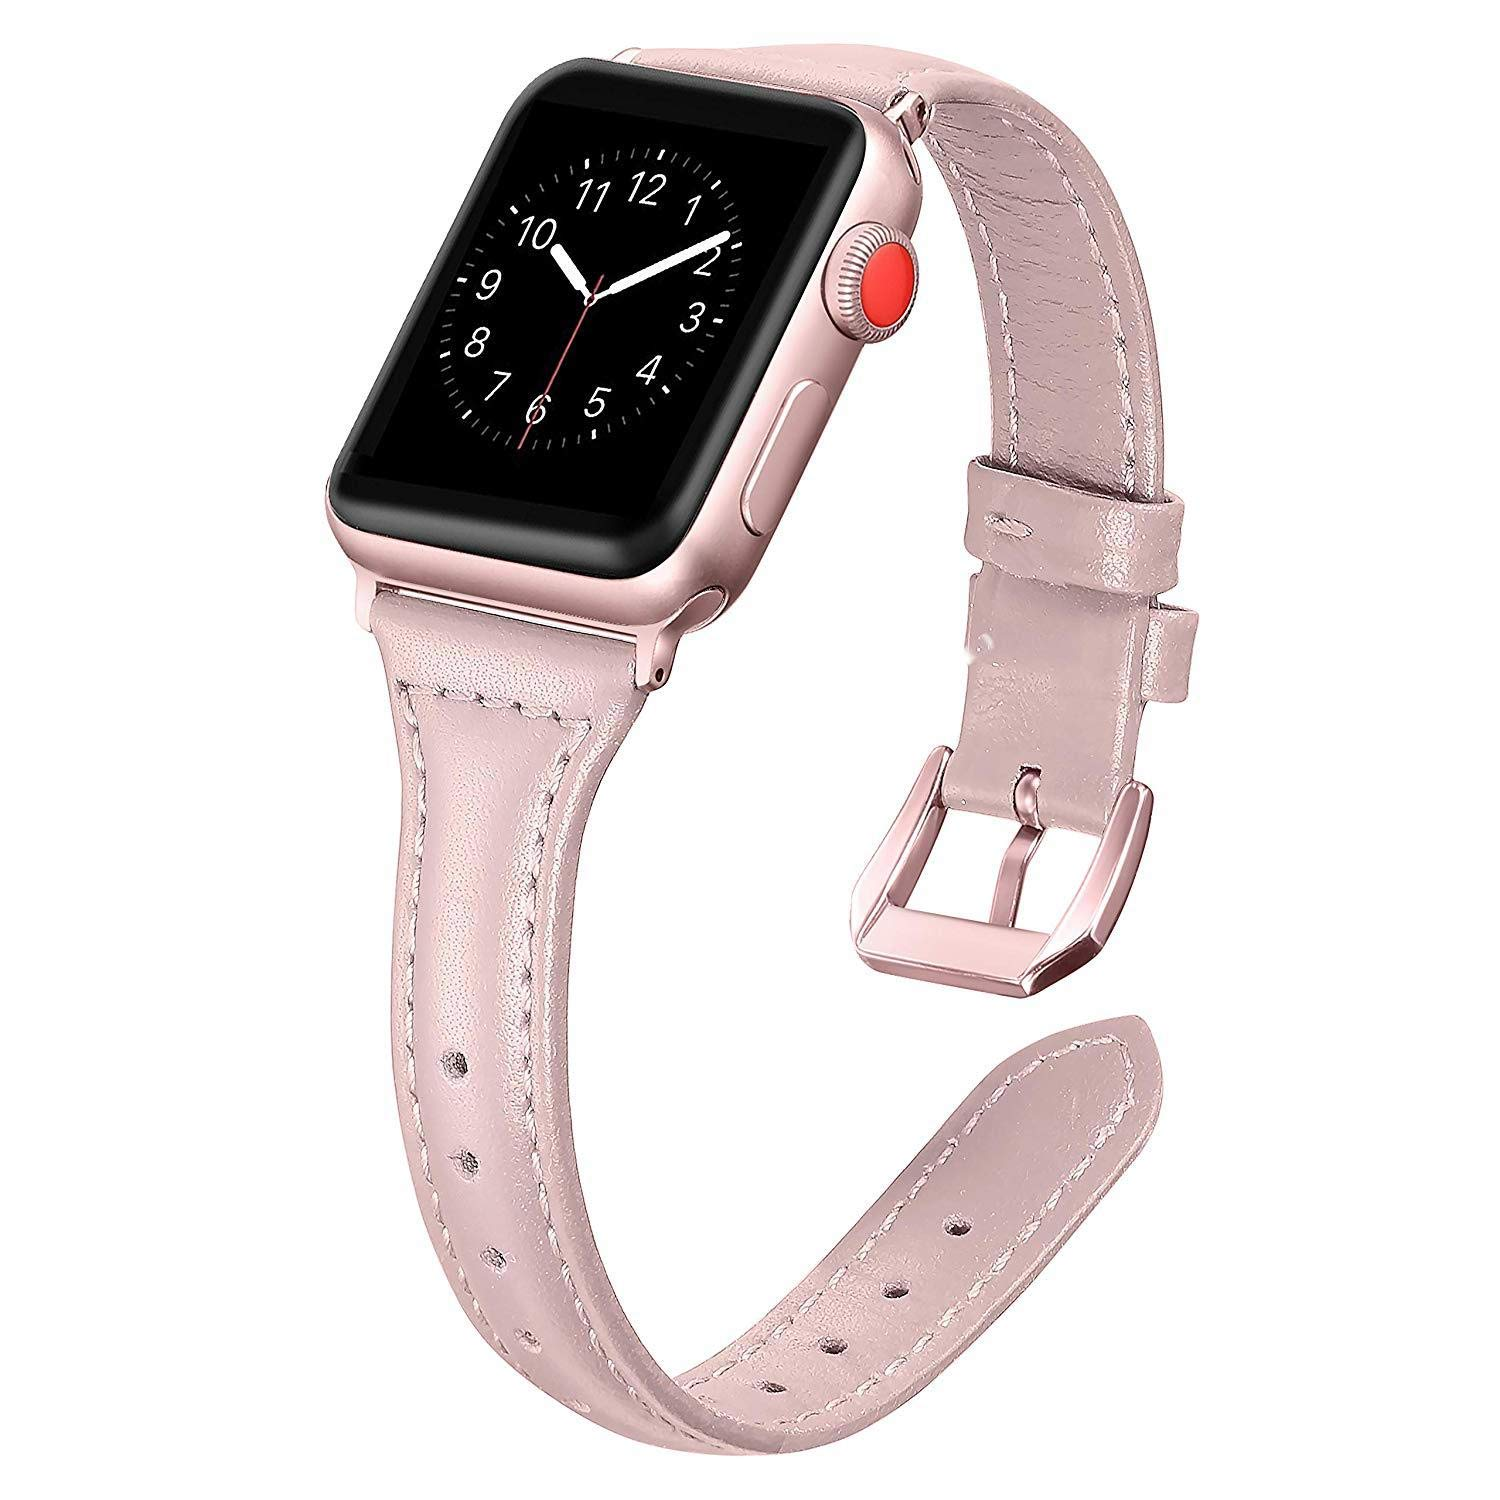 22mm Watch Band Wrist Watch Strap Top for Apple Watch Band 38mm 40 for Apple Watch Bands New for Apple Watch Band 38mm 38 Watch Holder for Women for Apple Watch 32mm Band for Apple (Pink, 38mm40mm)